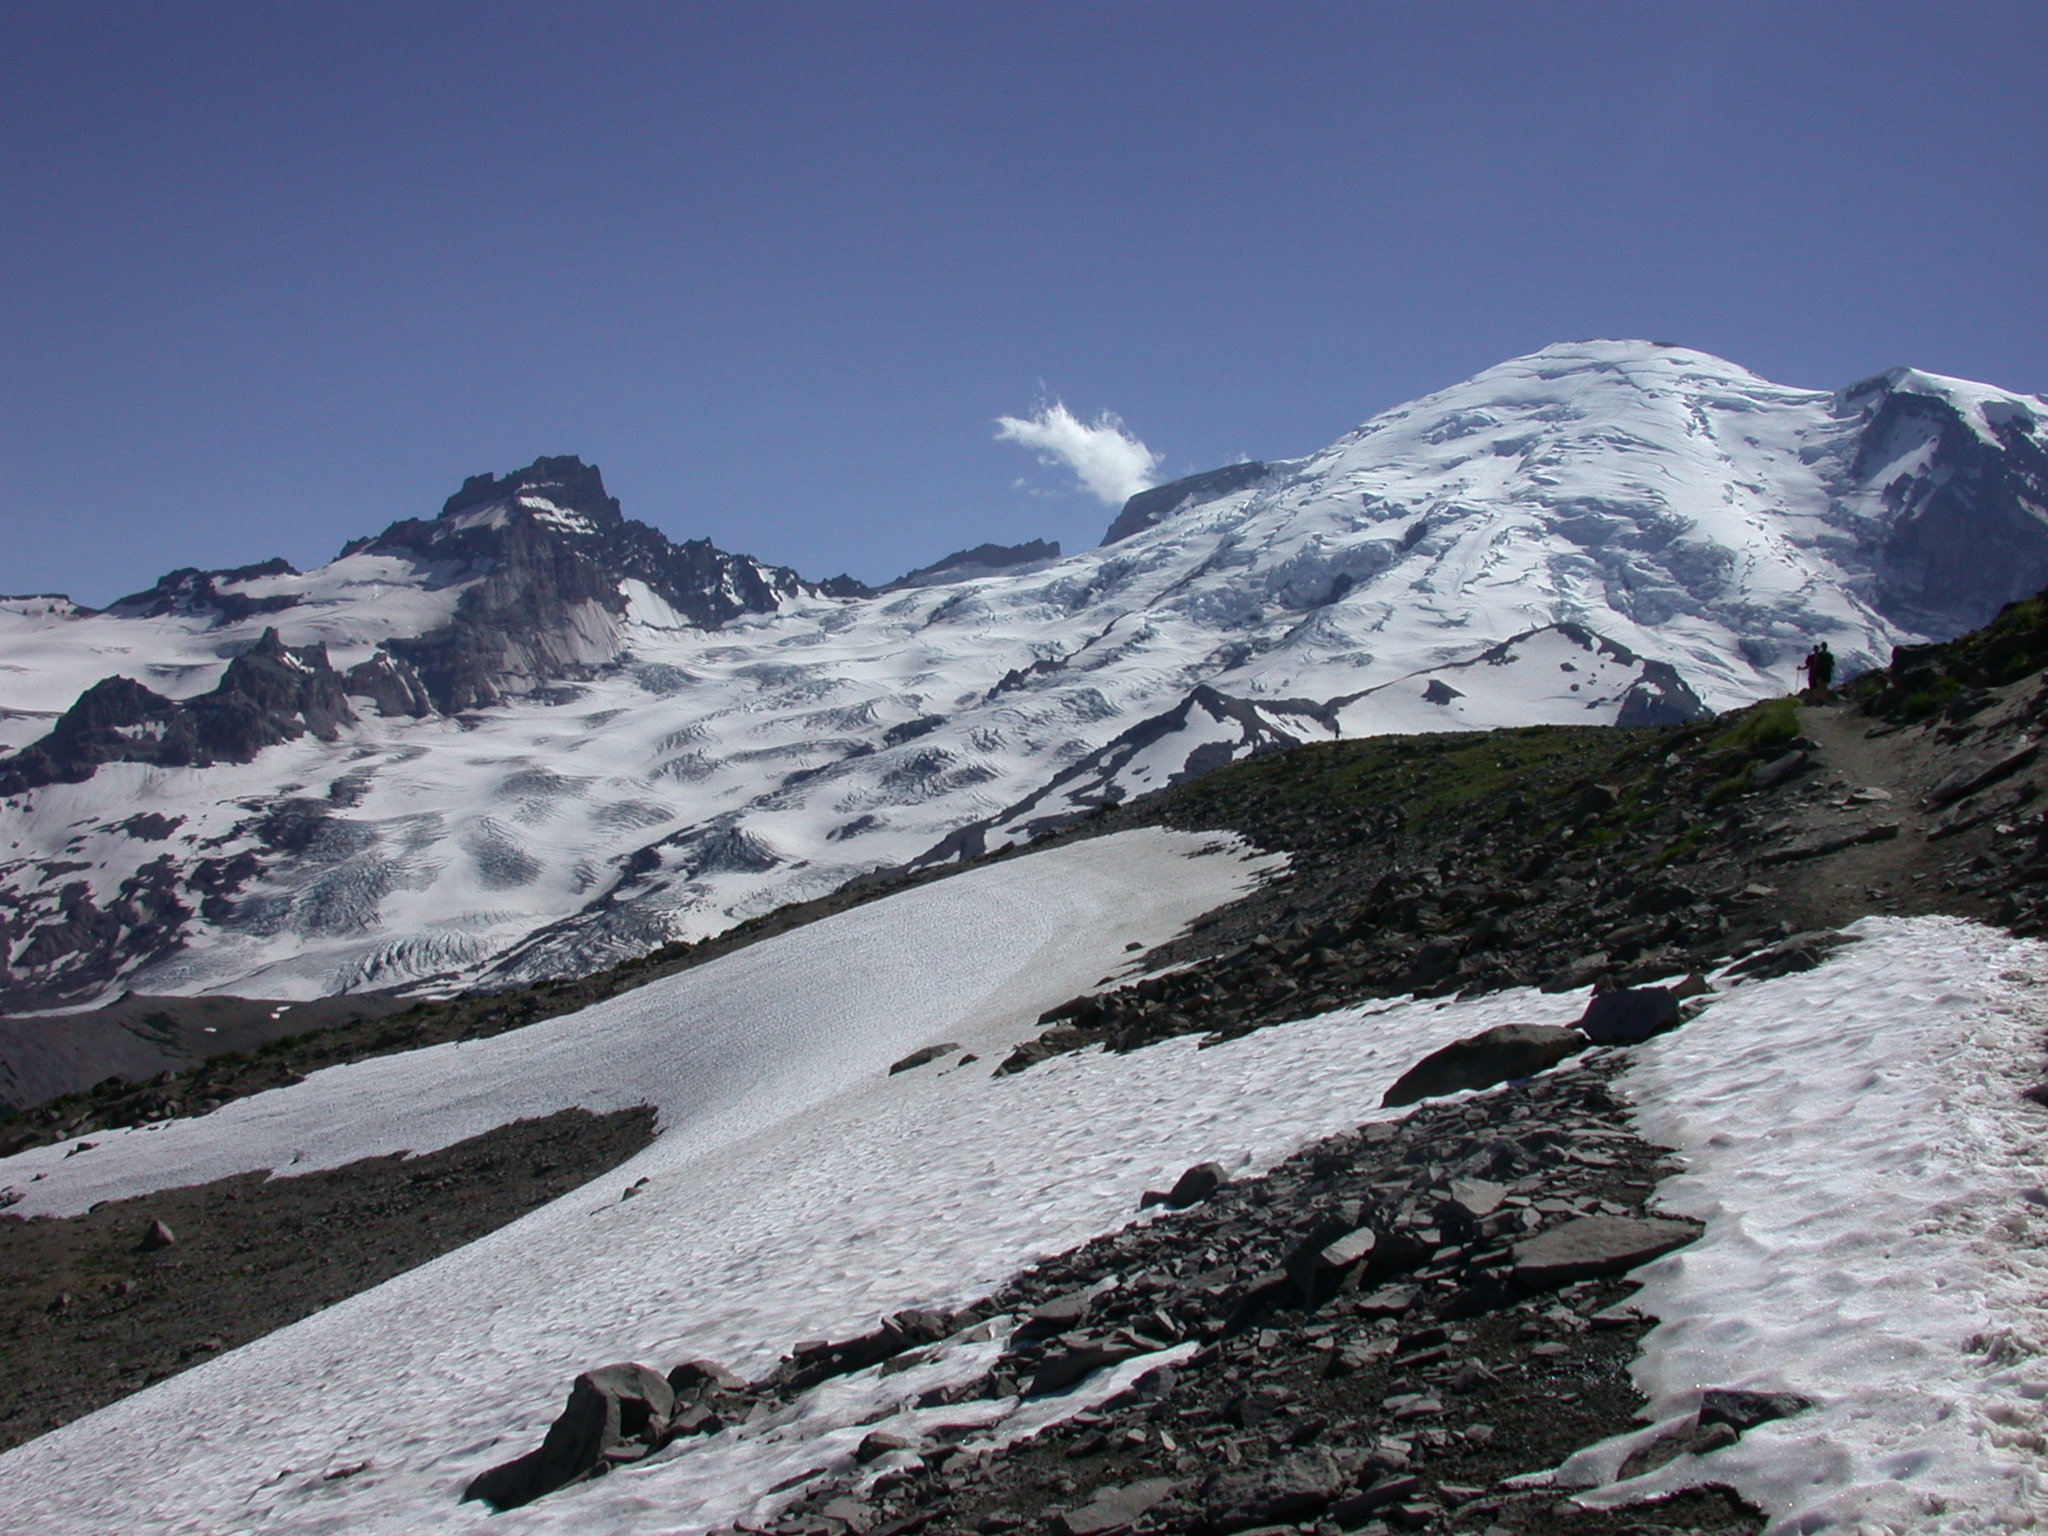 More Snow on Trail From Burroughs Peak I to Burroughs Peak II on Mount Rainier